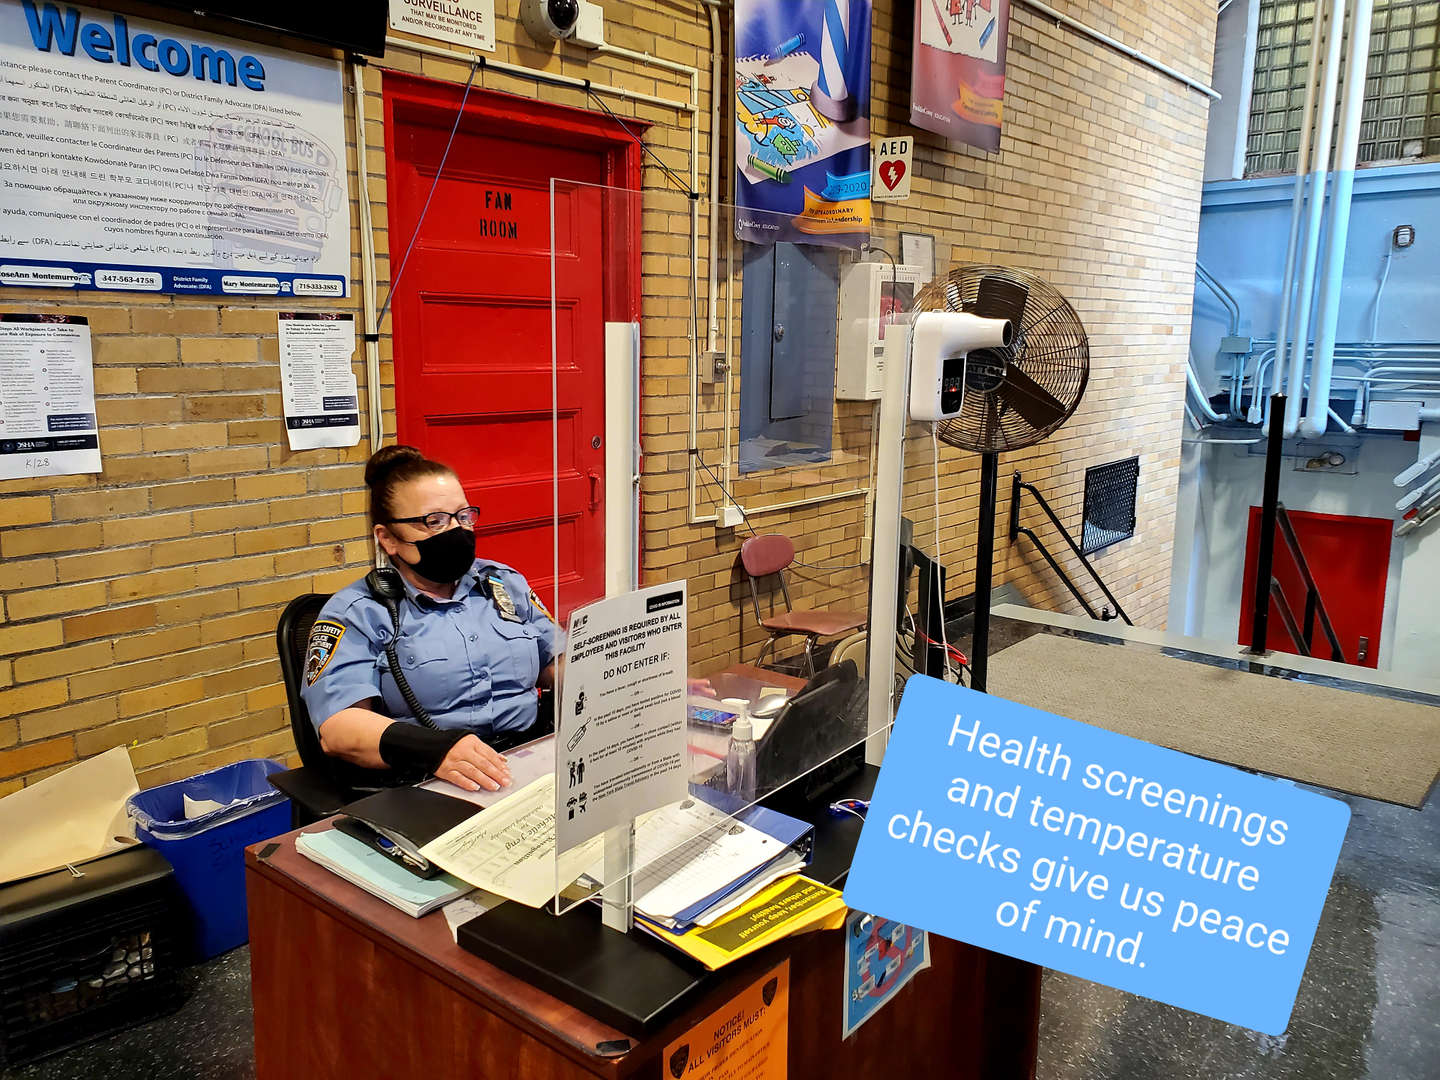 School safety agent at desk with plexiglass barrier and wall thermometer.